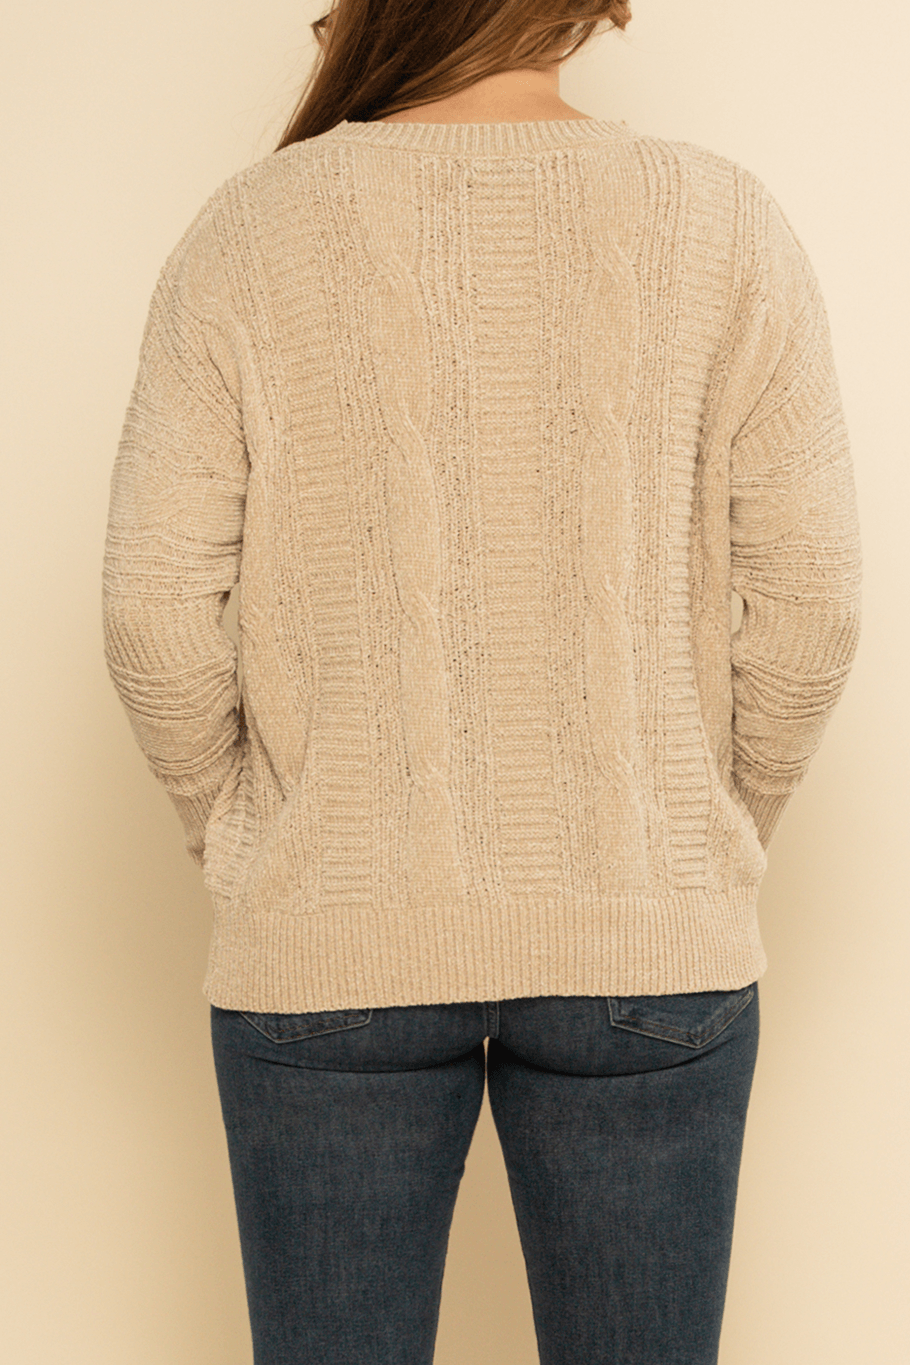 Fairbanks Sweater - Cream - Shore